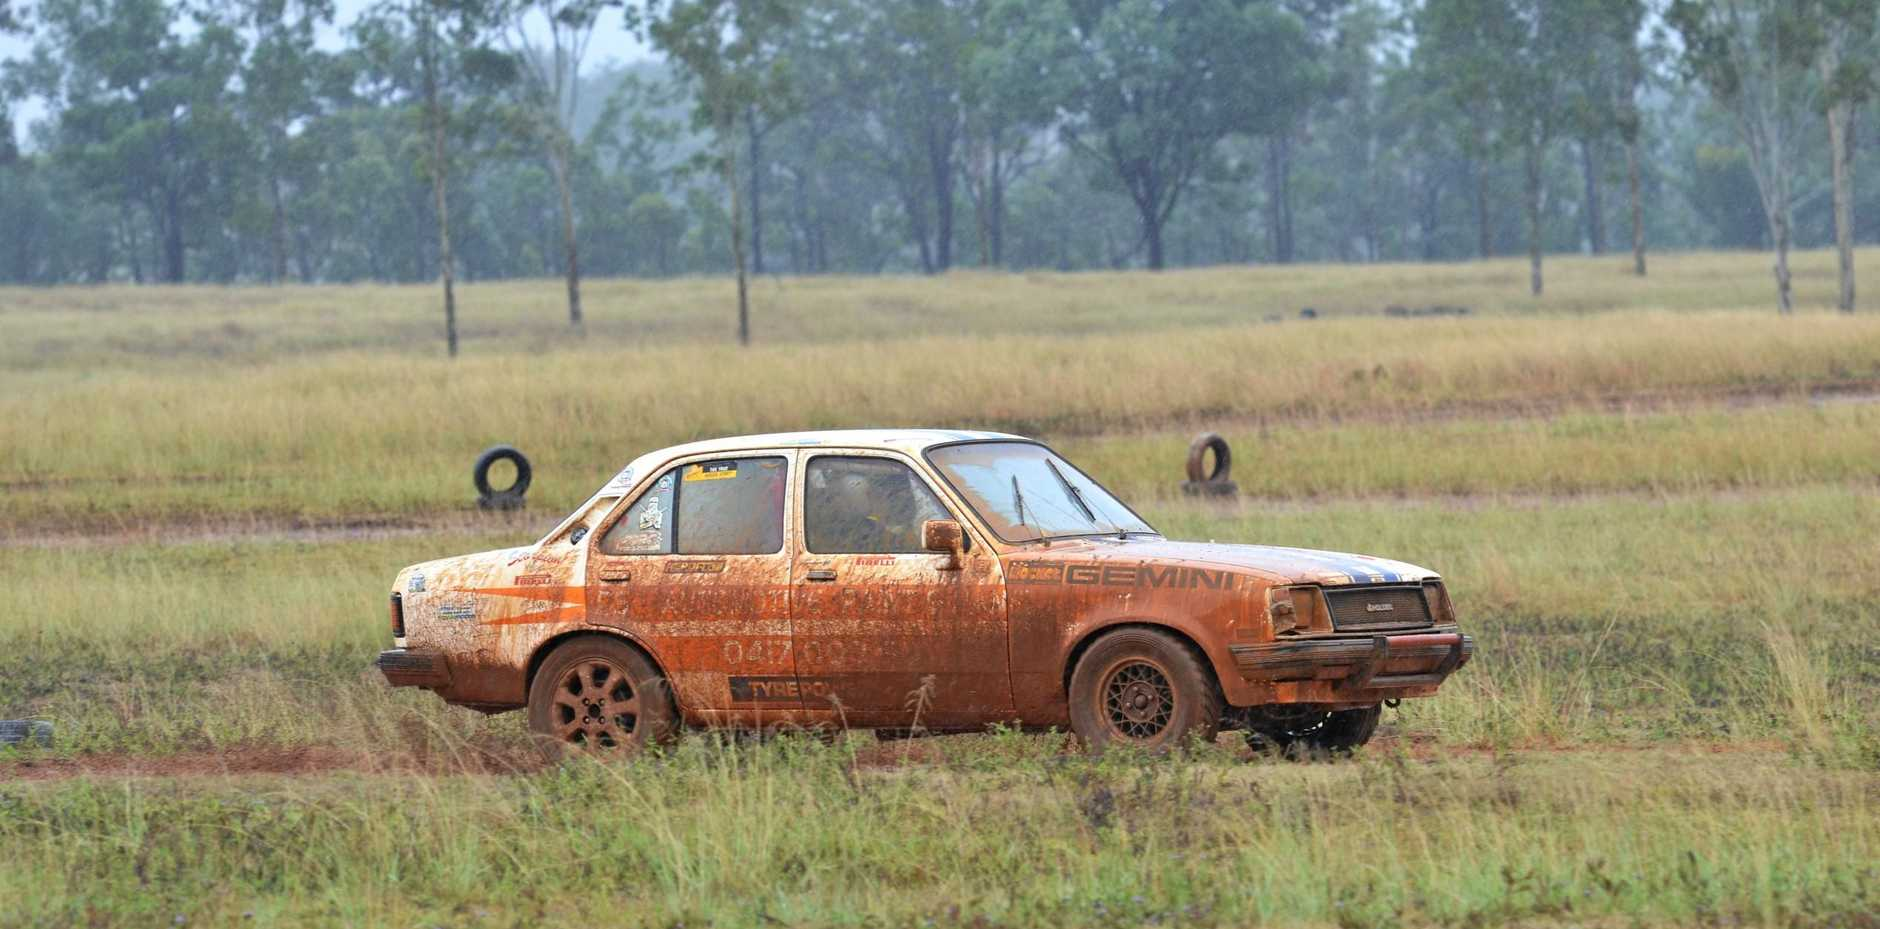 RACING: The weather added an extra dimension to racing at the Proston Car Rally.